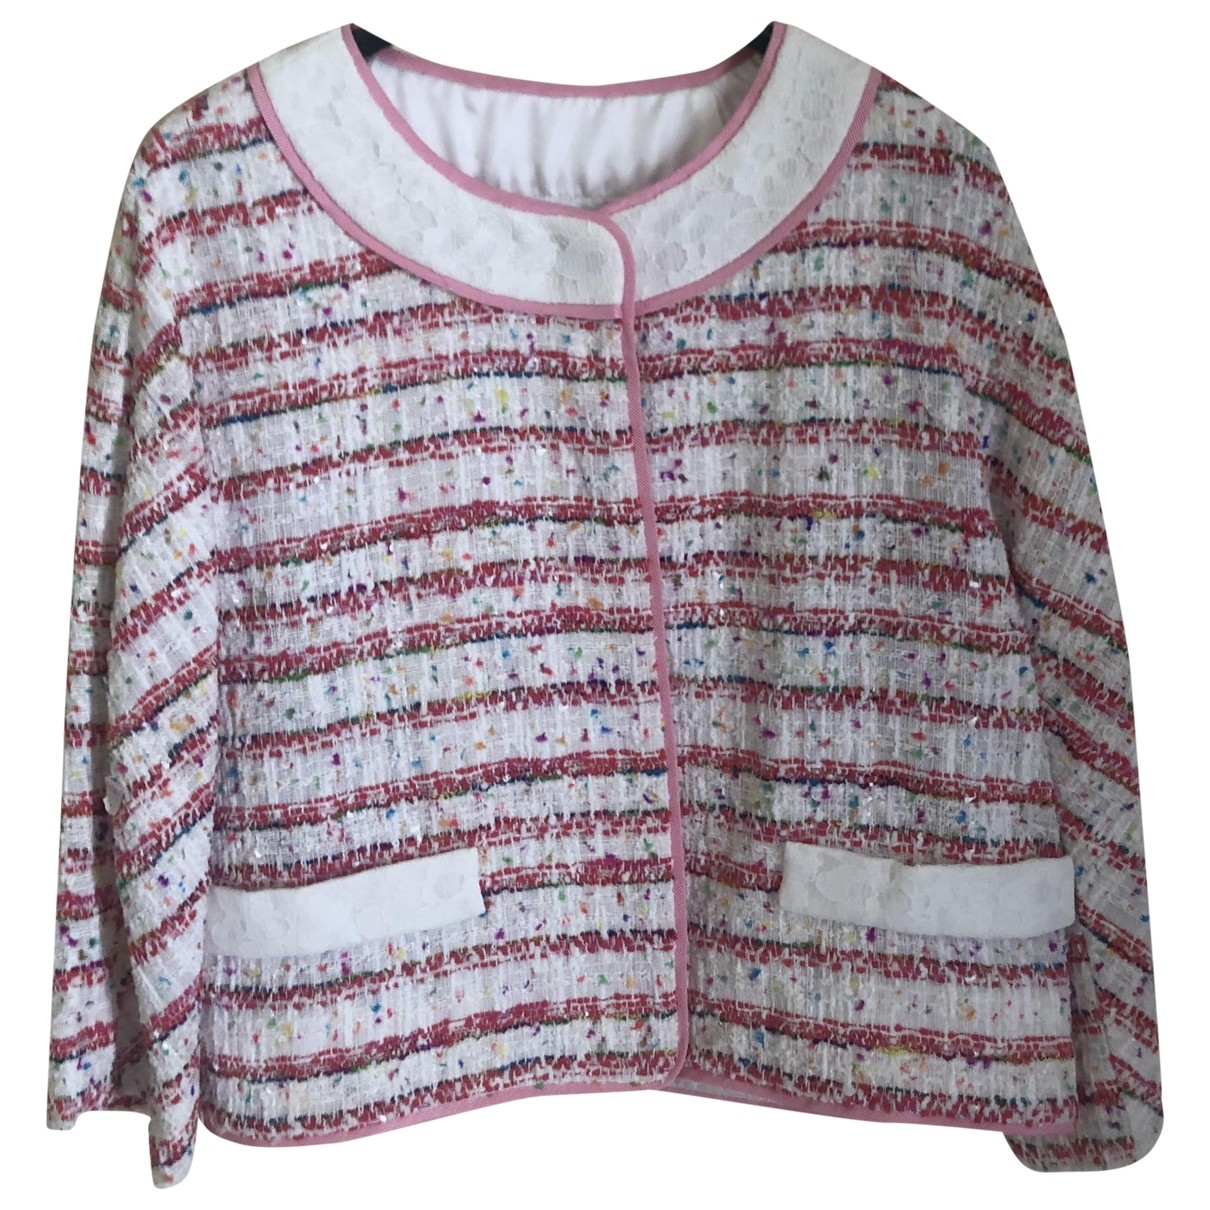 Moschino \N Pink Tweed jacket for Women 38 IT